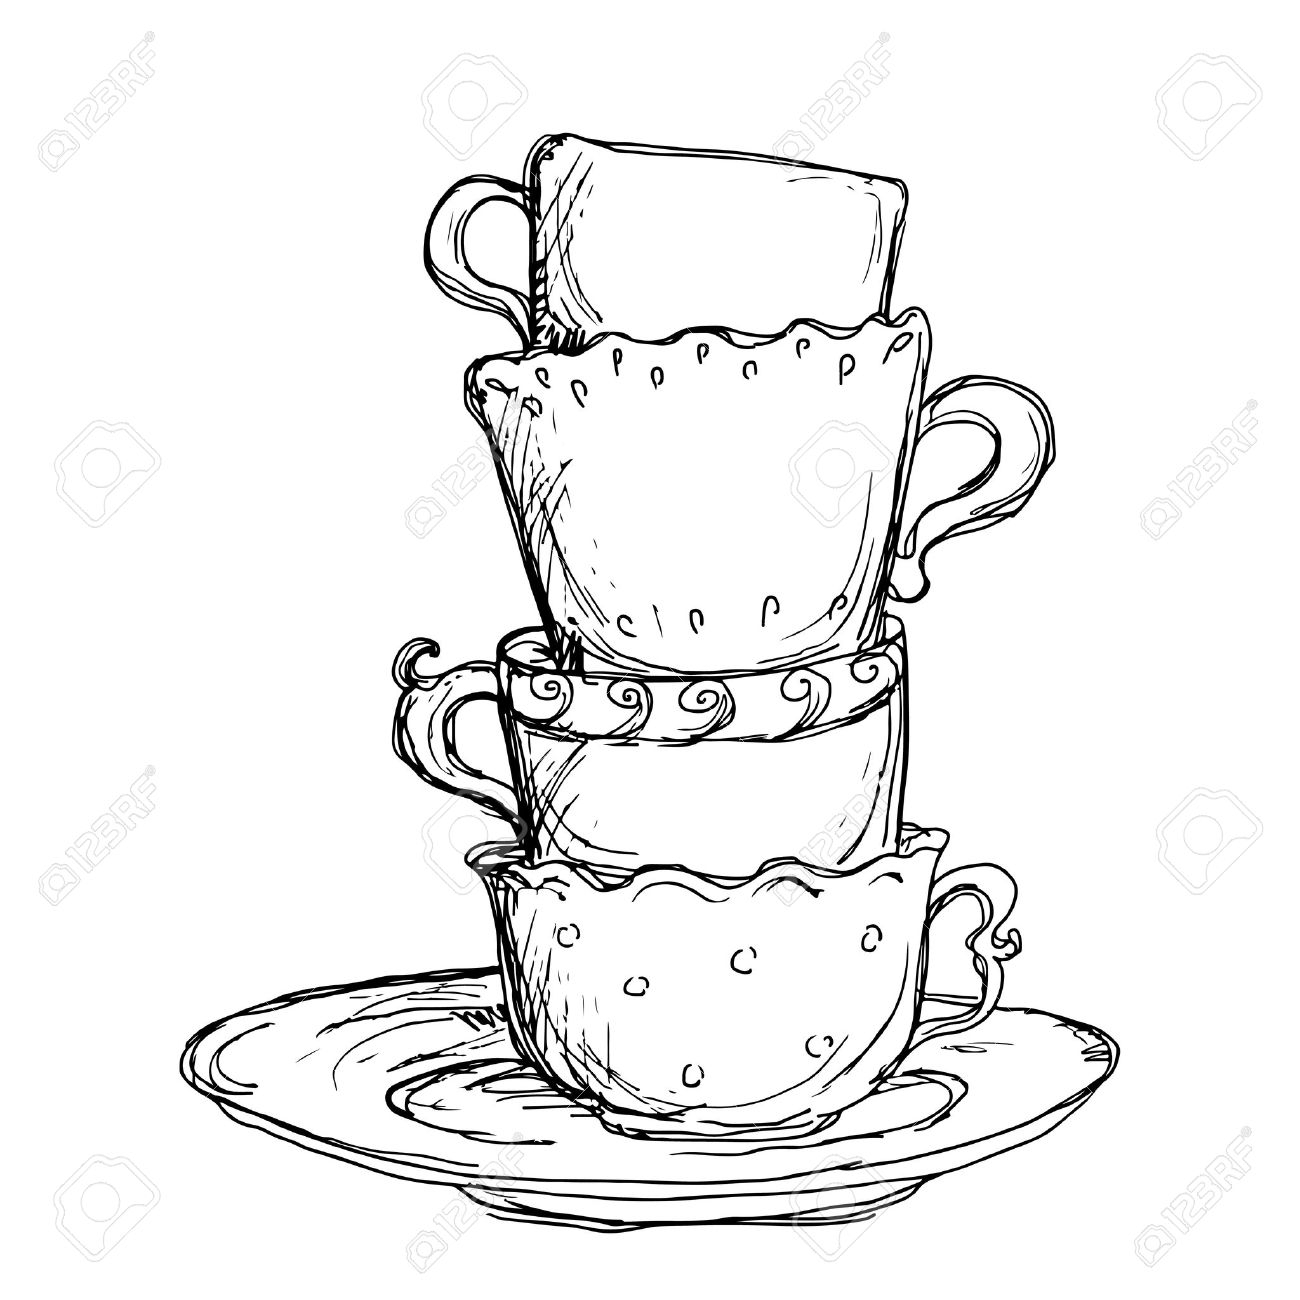 Lovable A Teacup Tea Cup Drawing At Free Drawing Tea Cups Cartoon Tea Cup Images Personal Use Tea Cup Cartoon Images furniture Cartoon Tea Cups